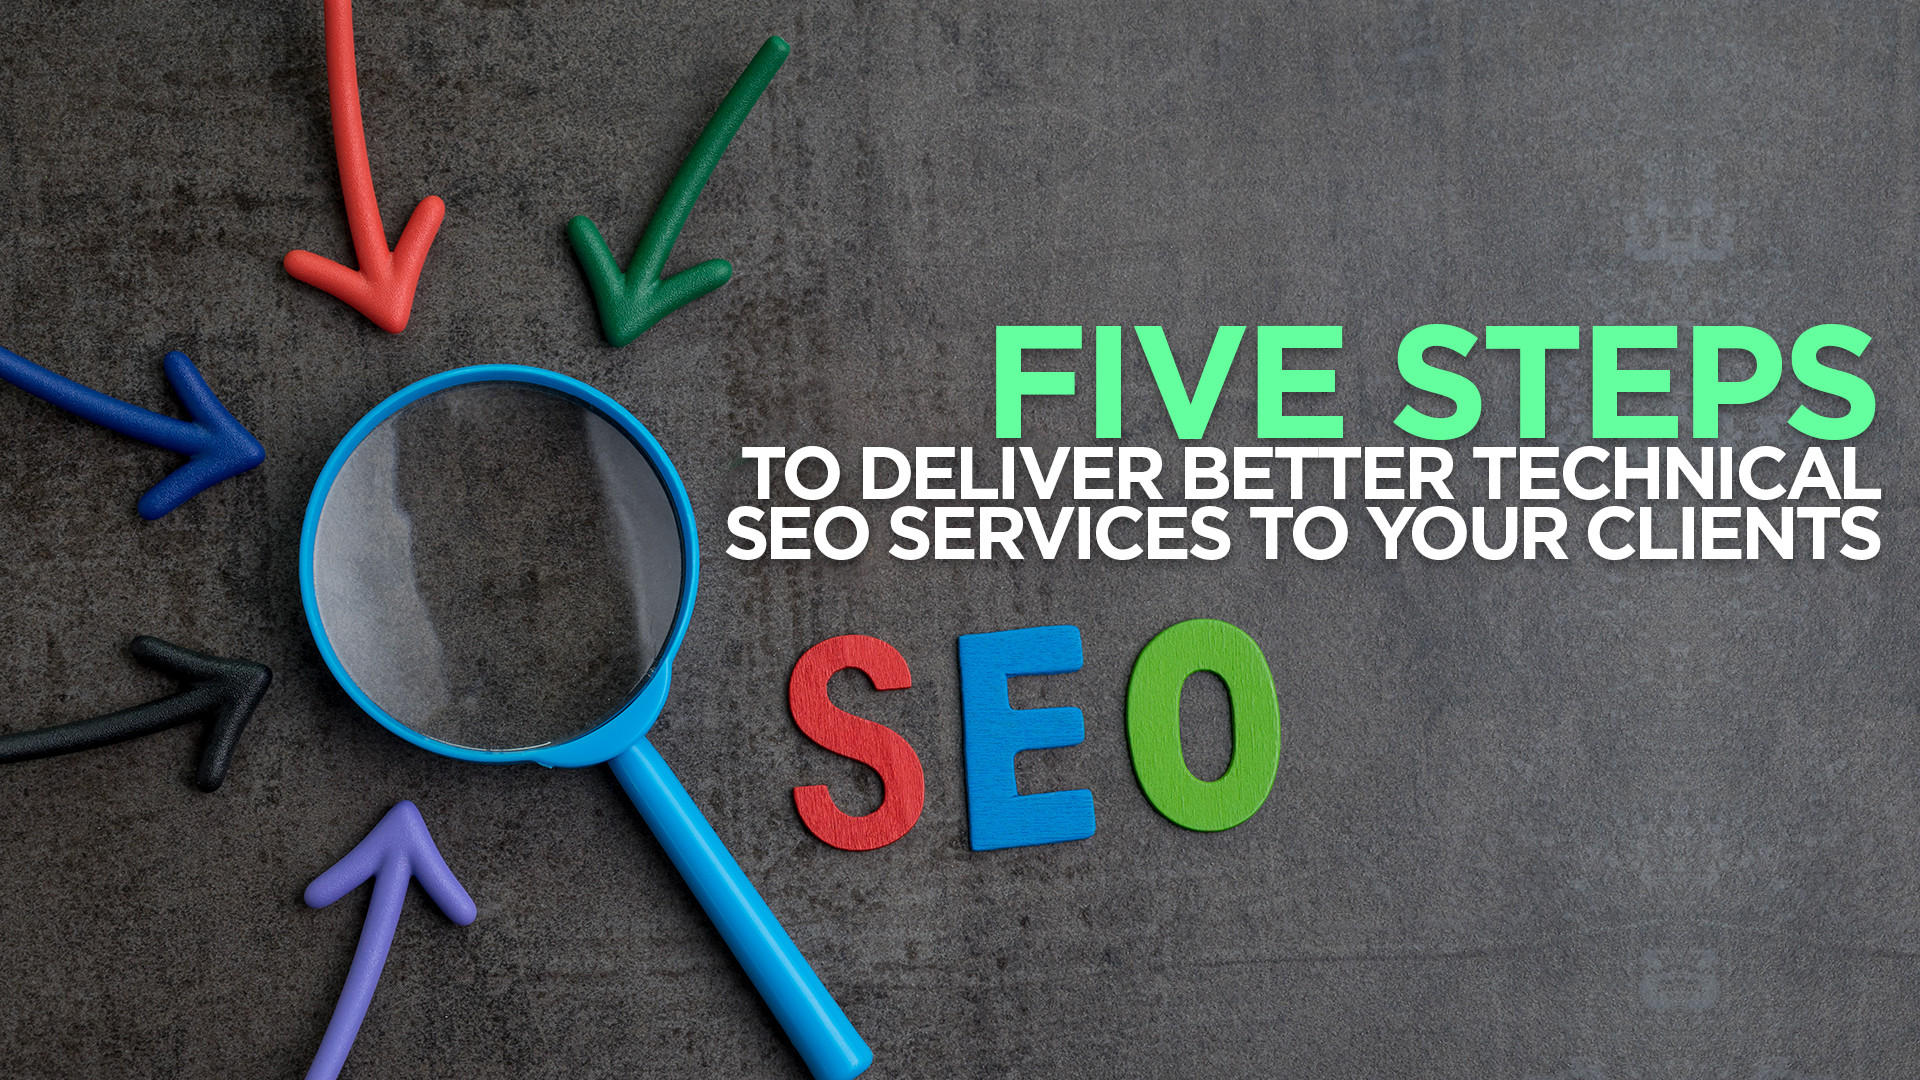 5 Tips For Delivering Best Technical SEO Services To Clients